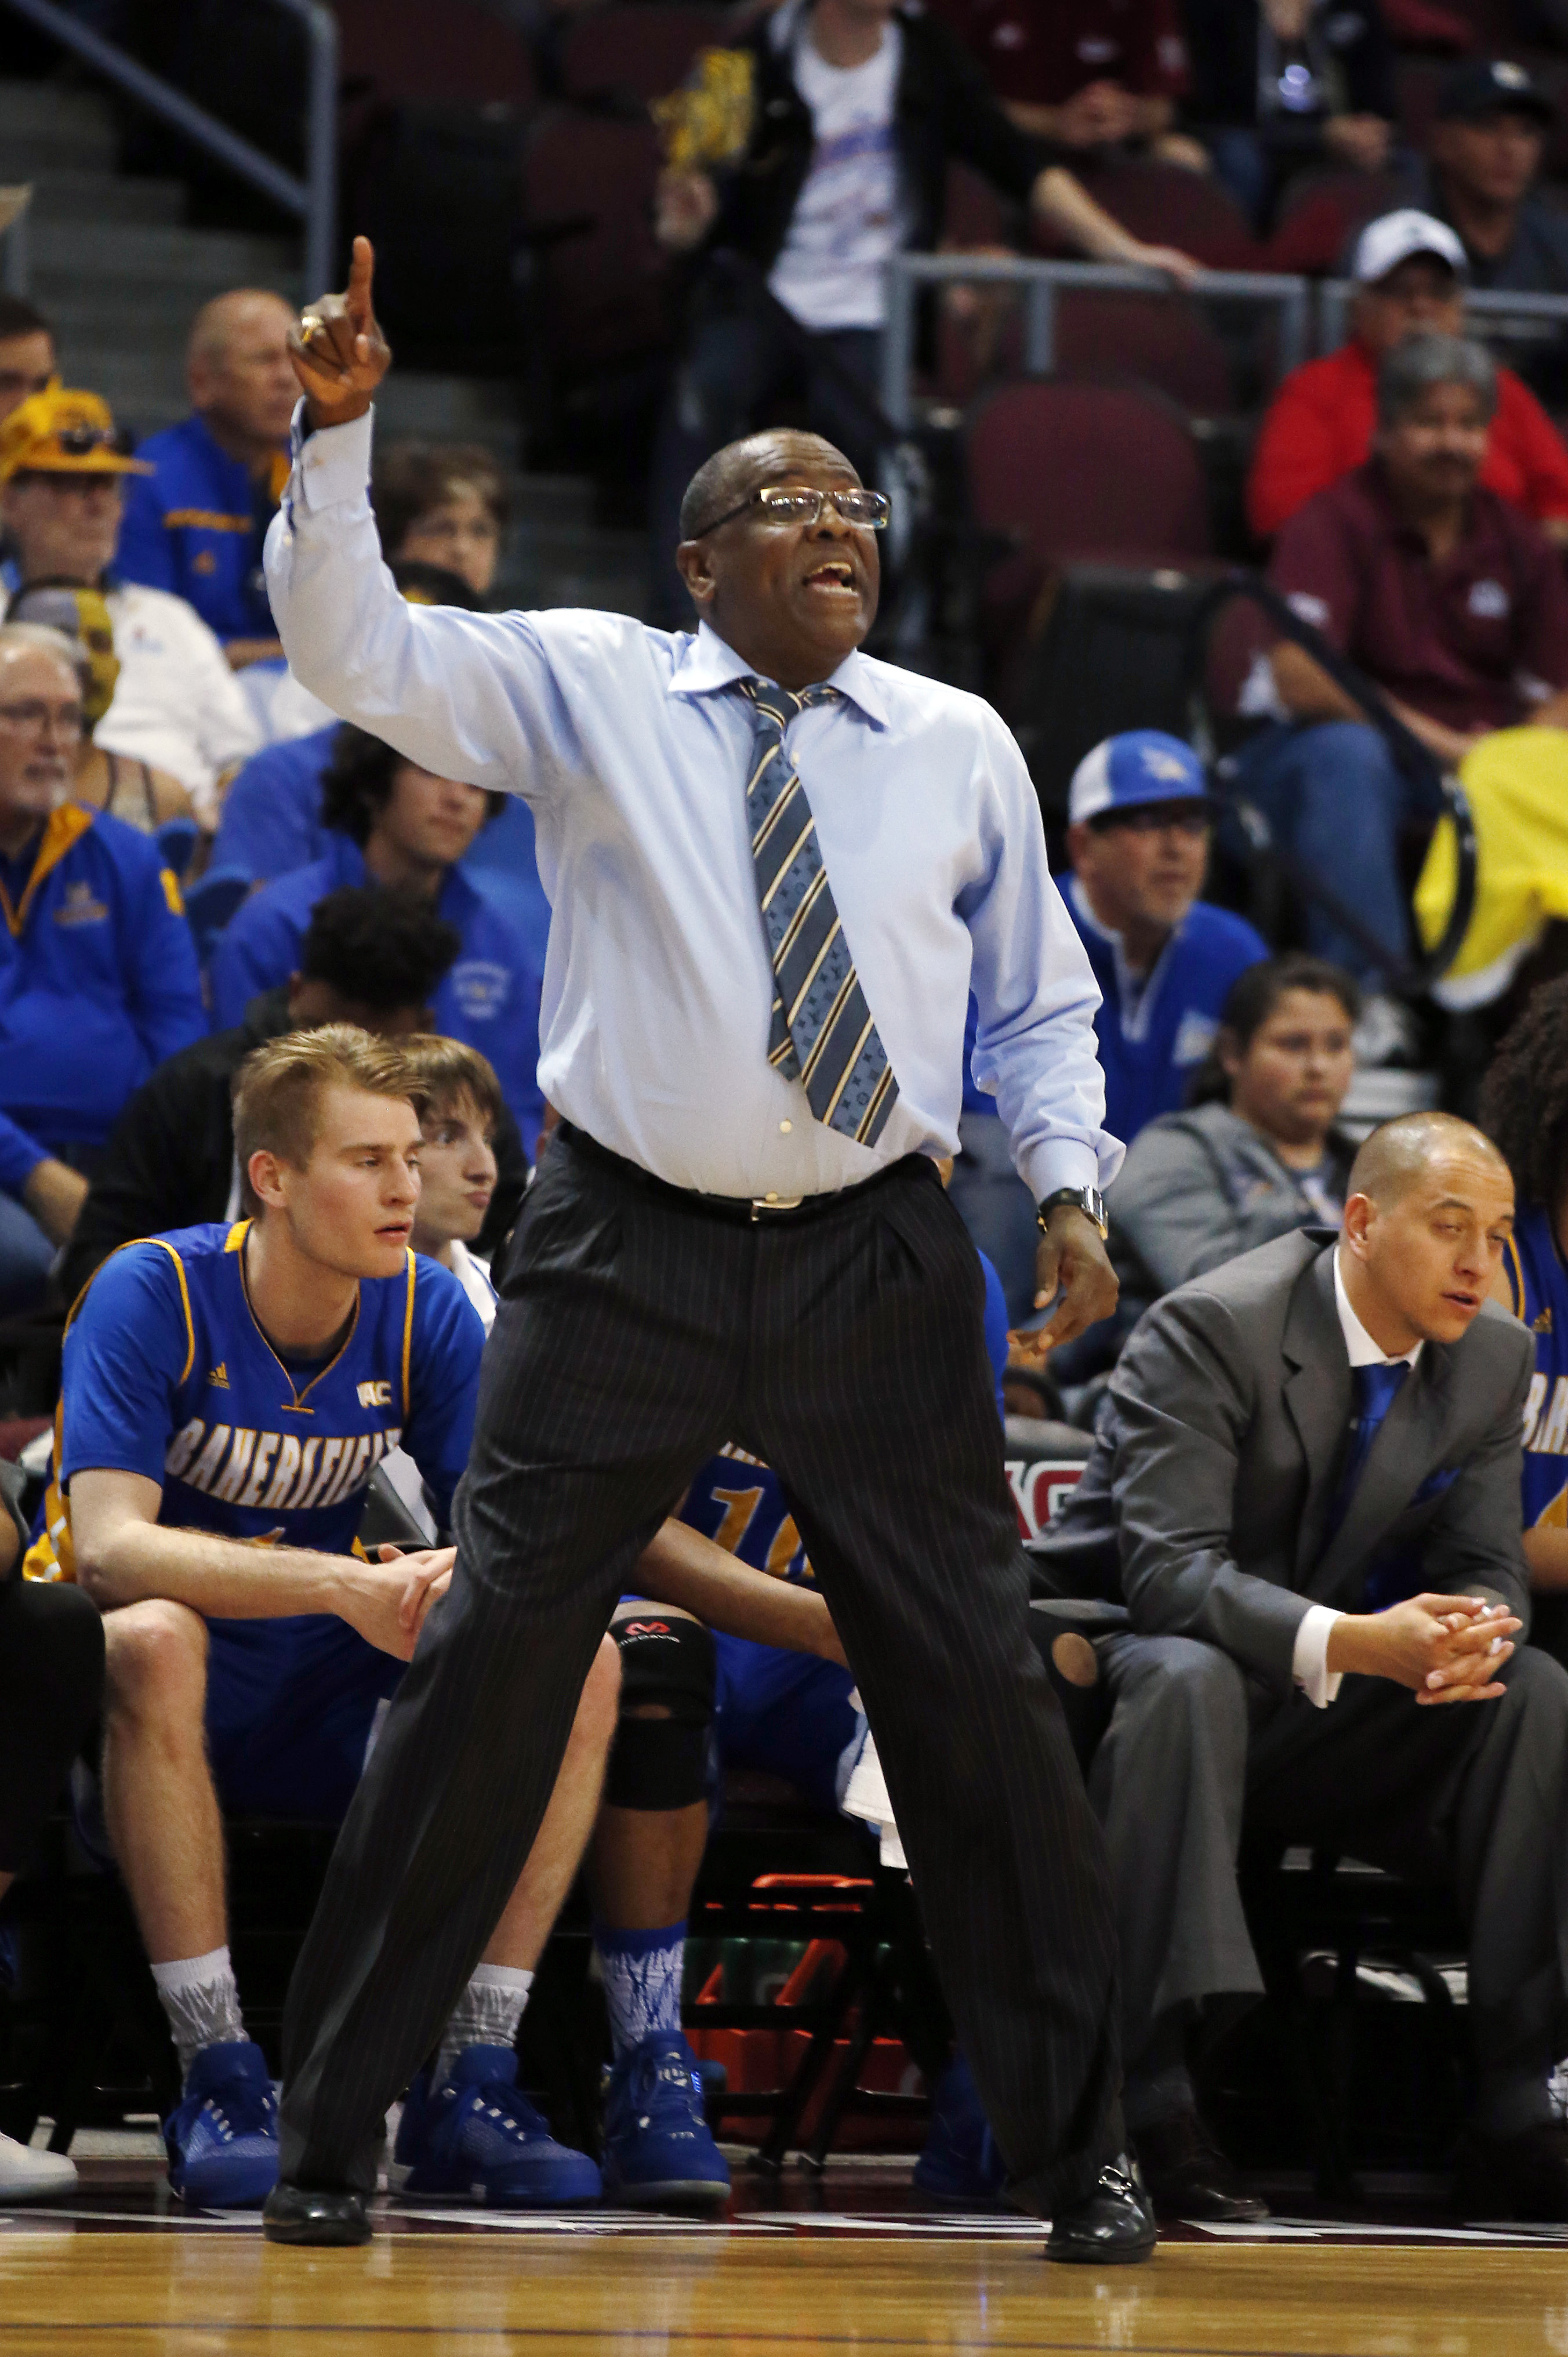 Cal State Bakersfield coach Rod Barnes talks to his team during the first half of an NCAA college basketball game against New Mexico State in the final of the Western Athletic Conference men's tournament Saturday, March 12, 2016, in Las Vegas. (AP Photo/I